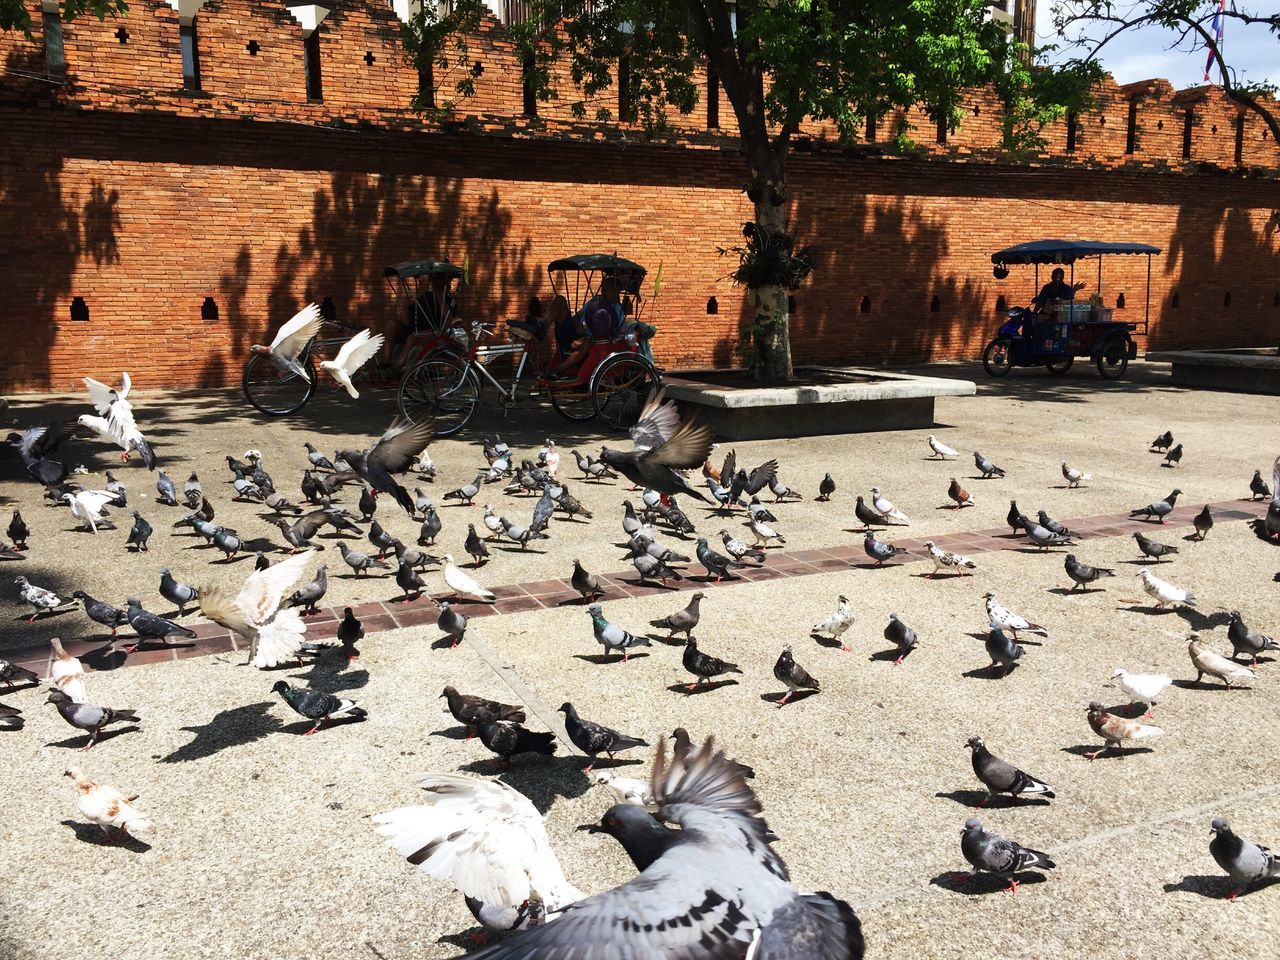 large group of animals, bird, animals in the wild, flock of birds, animal themes, large group of people, day, animal wildlife, outdoors, sunlight, architecture, nature, people